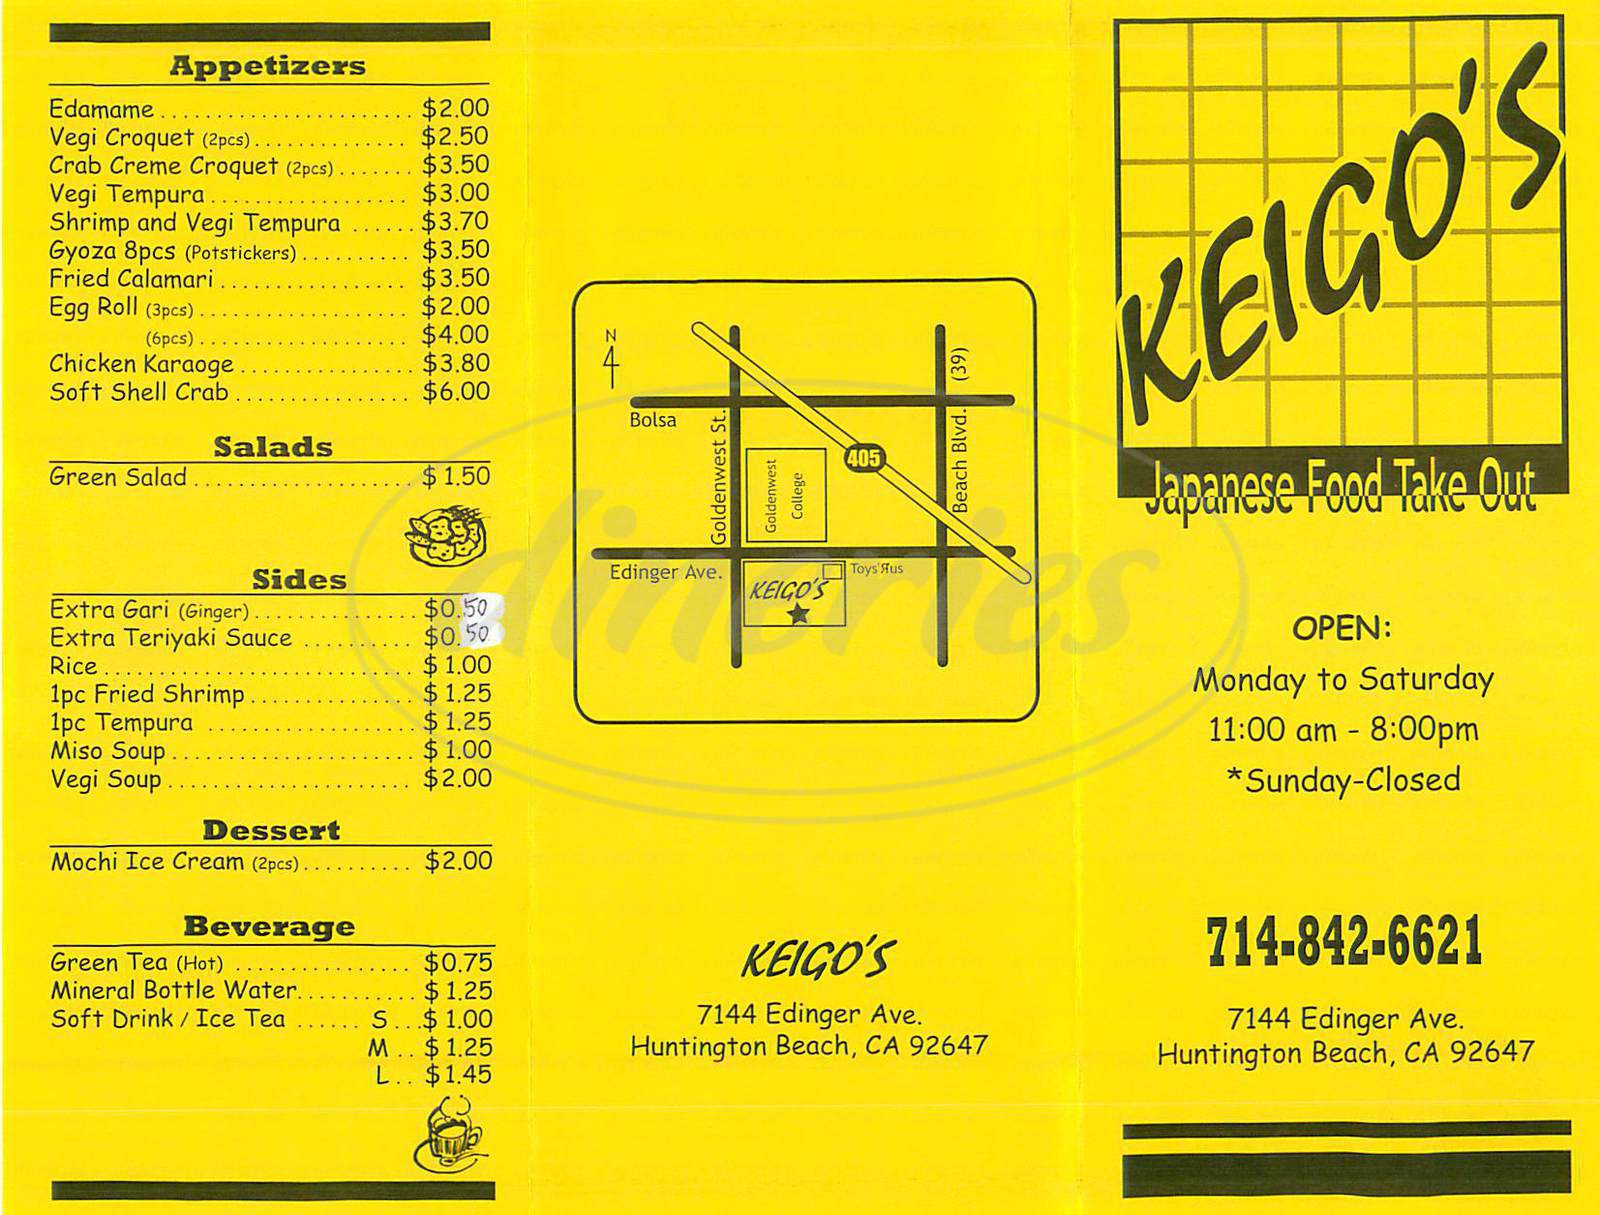 Keigos Japanese Food Take Out Menu Huntington Beach Dineries